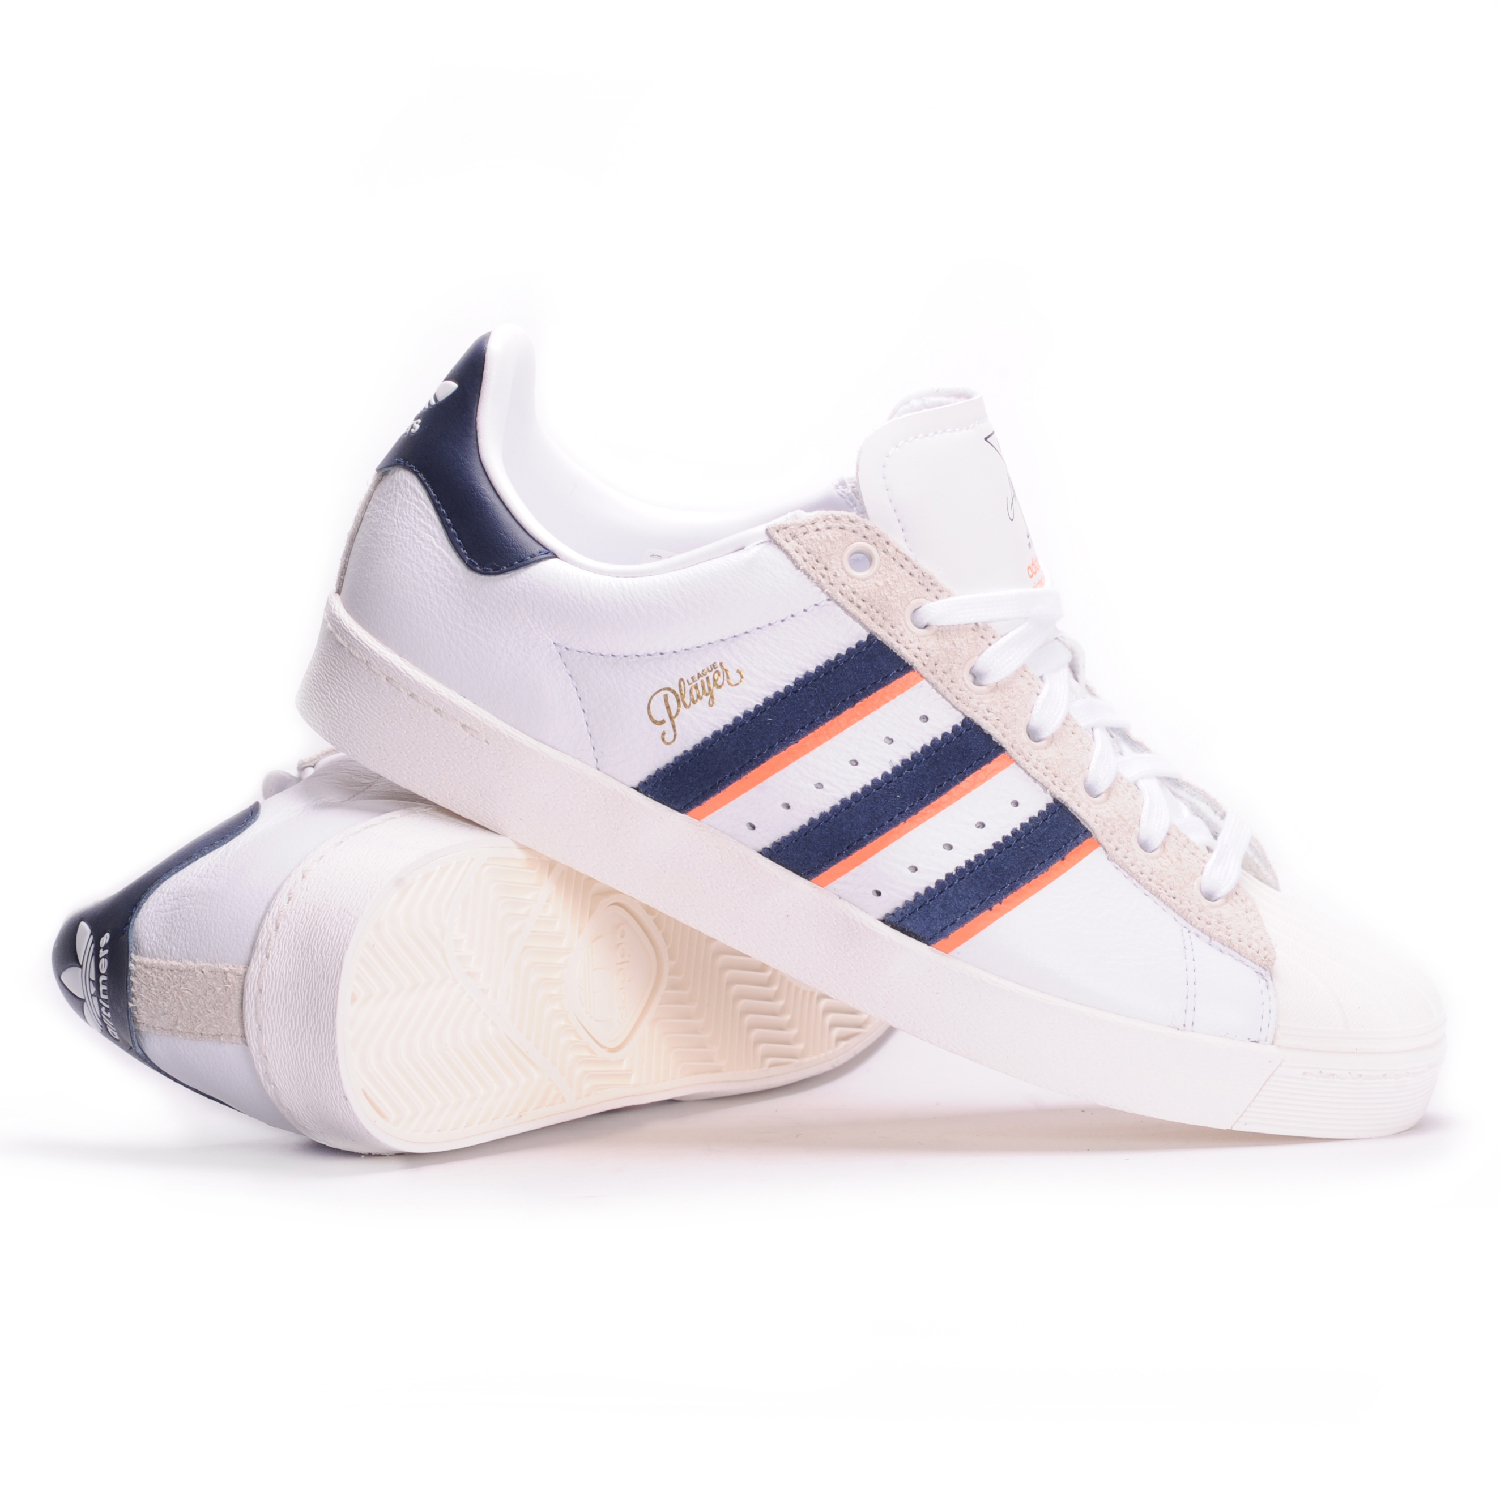 bklxe Adidas Superstar India White potassiumstore.co.uk